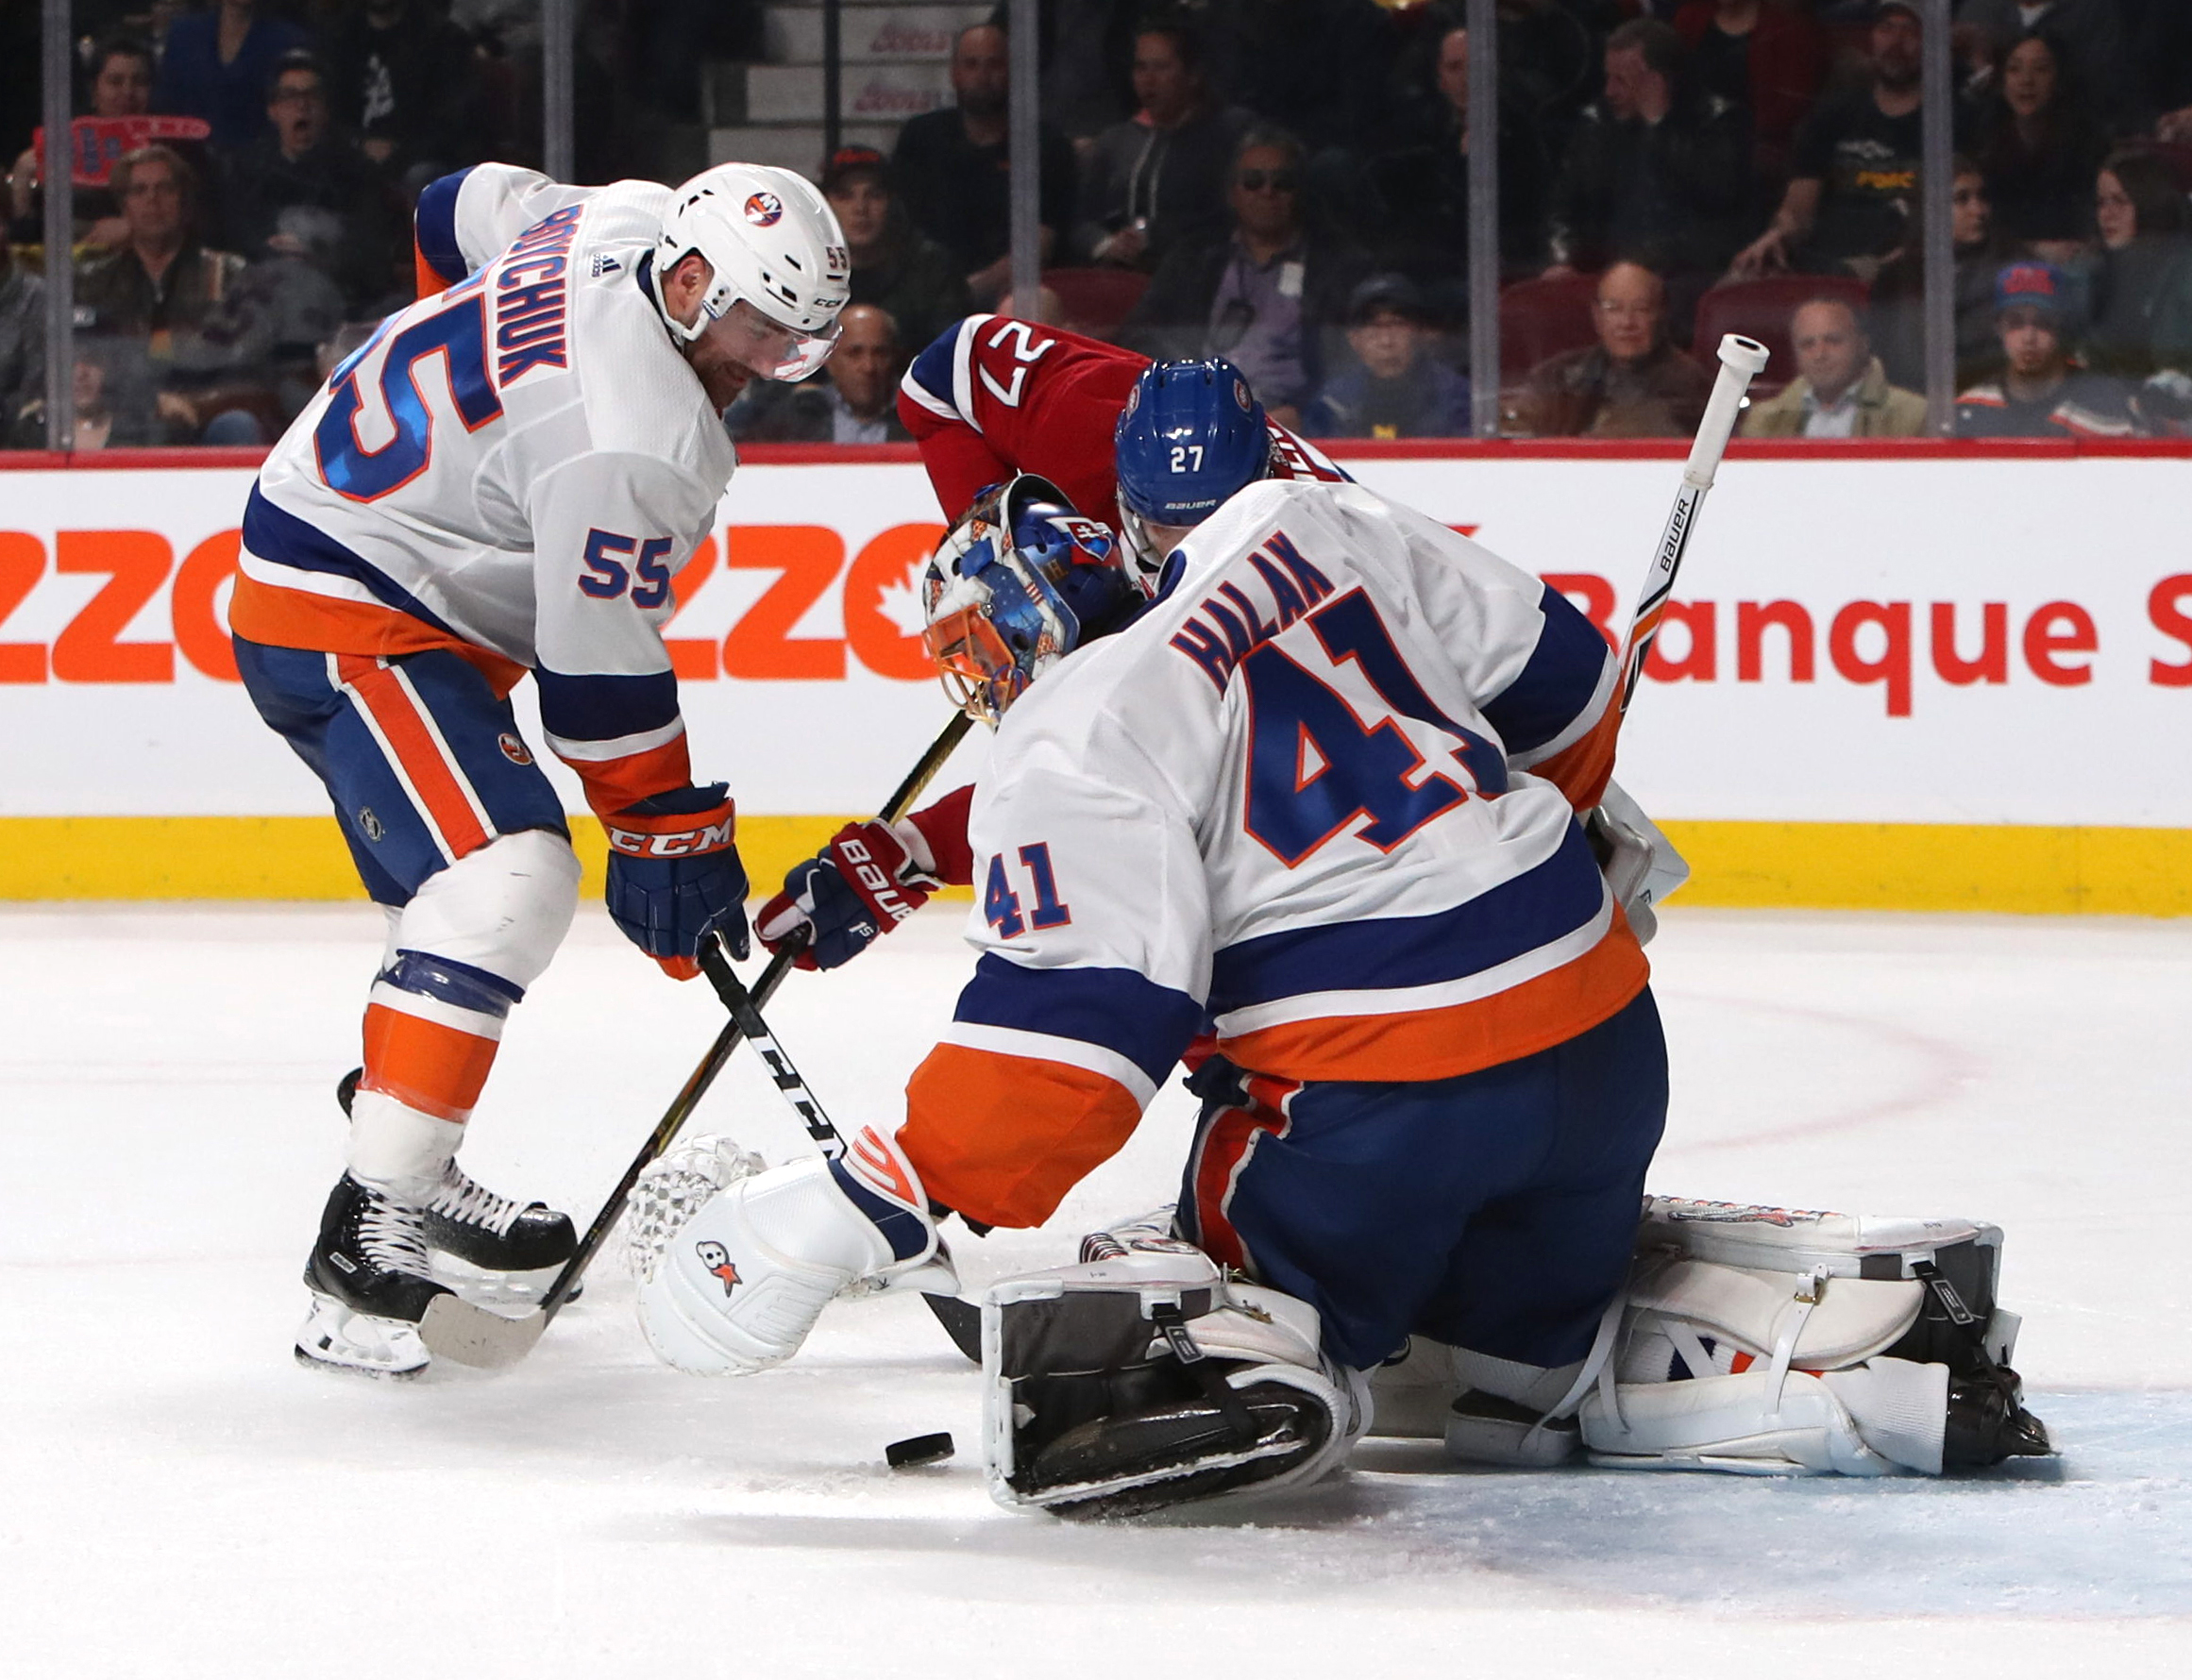 Feb 28, 2018; Montreal, Quebec, CAN; New York Islanders goaltender Jaroslav Halak (41) makes a save against Montreal Canadiens left wing Alex Galchenyuk (27) as defenseman Johnny Boychuk (55) defends during the second period at Bell Centre. Mandatory Credit: Jean-Yves Ahern-USA TODAY Sports